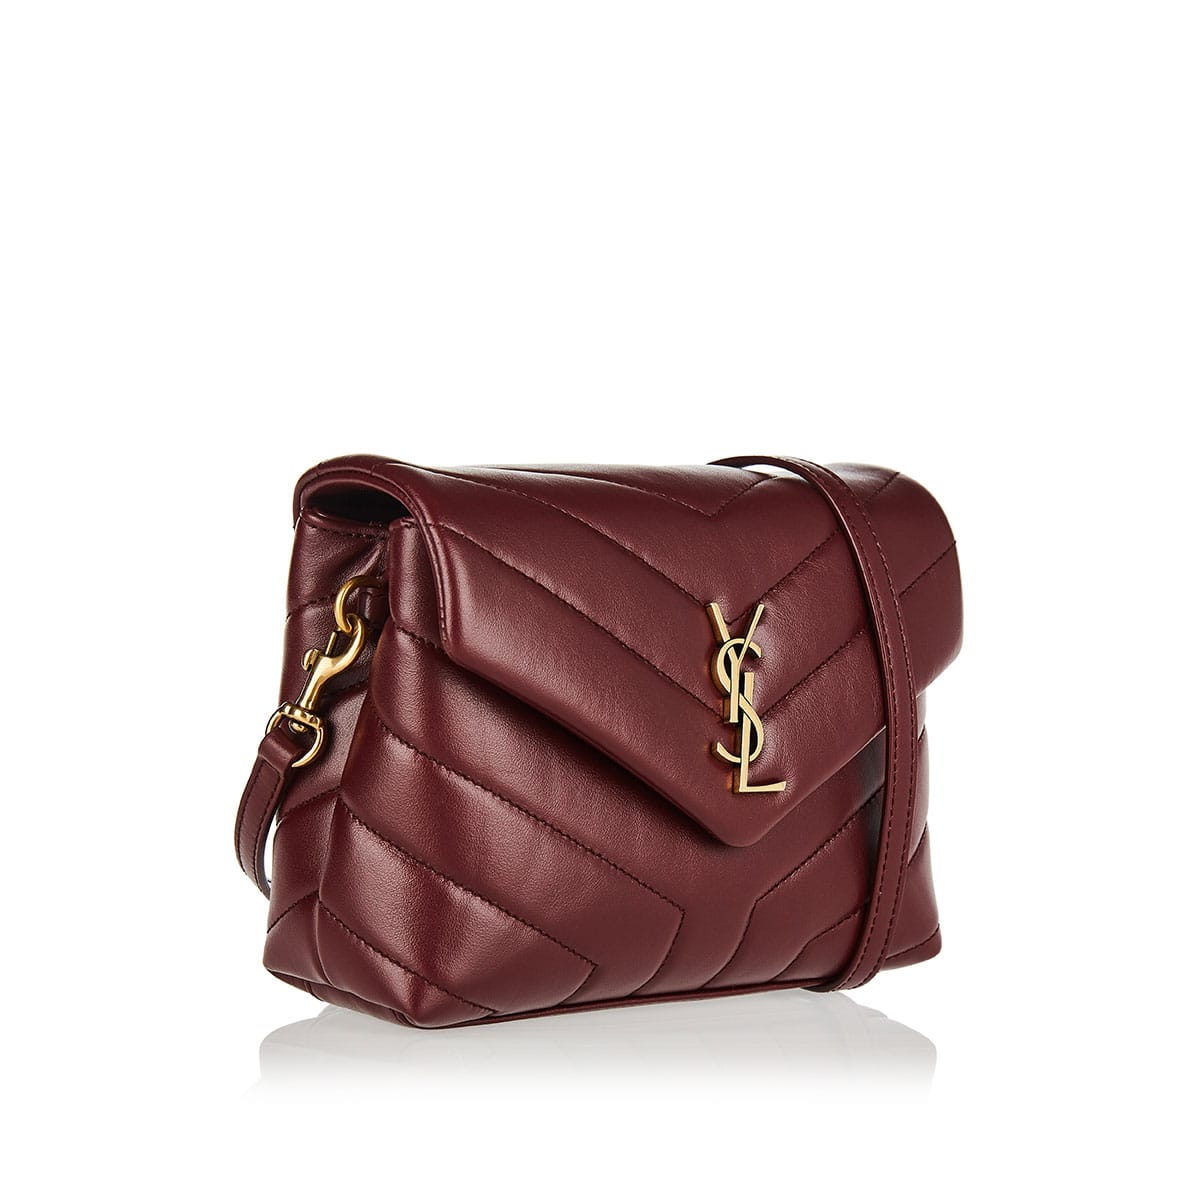 Loulou Toy Bag